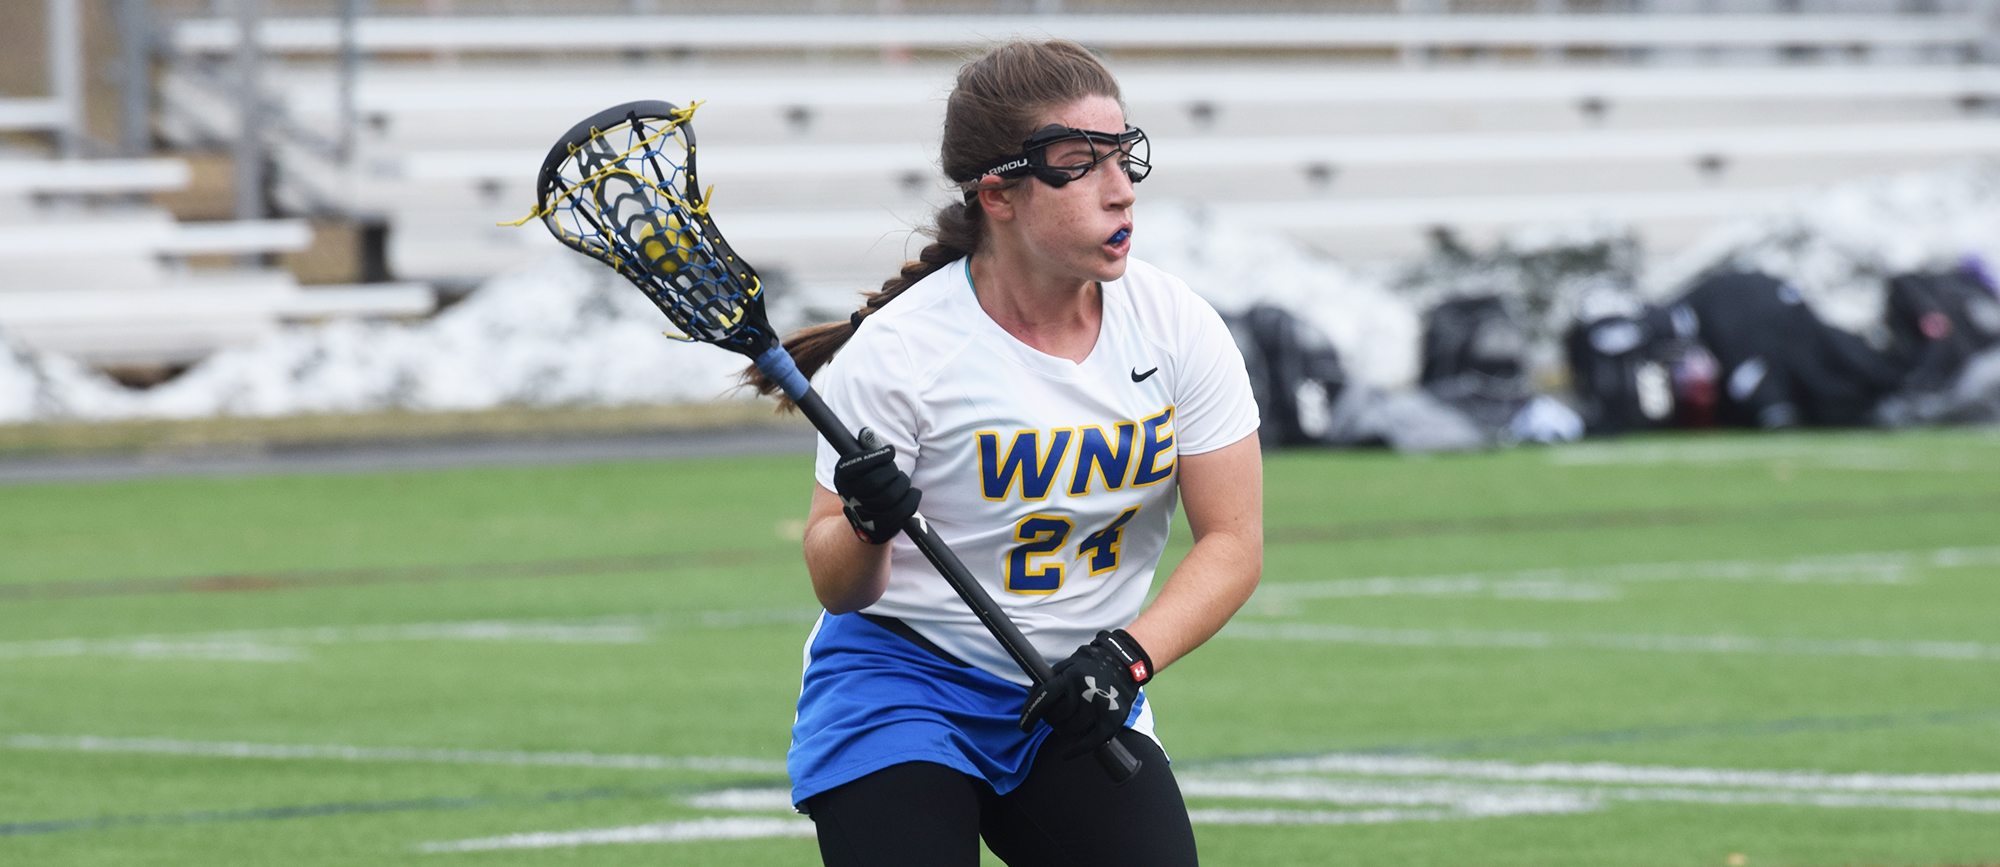 Freshman Ashley Hudson totaled five points in Western New England's CCC-opening victory over Curry on Tuesday. (Photo by Rachael Margossian)